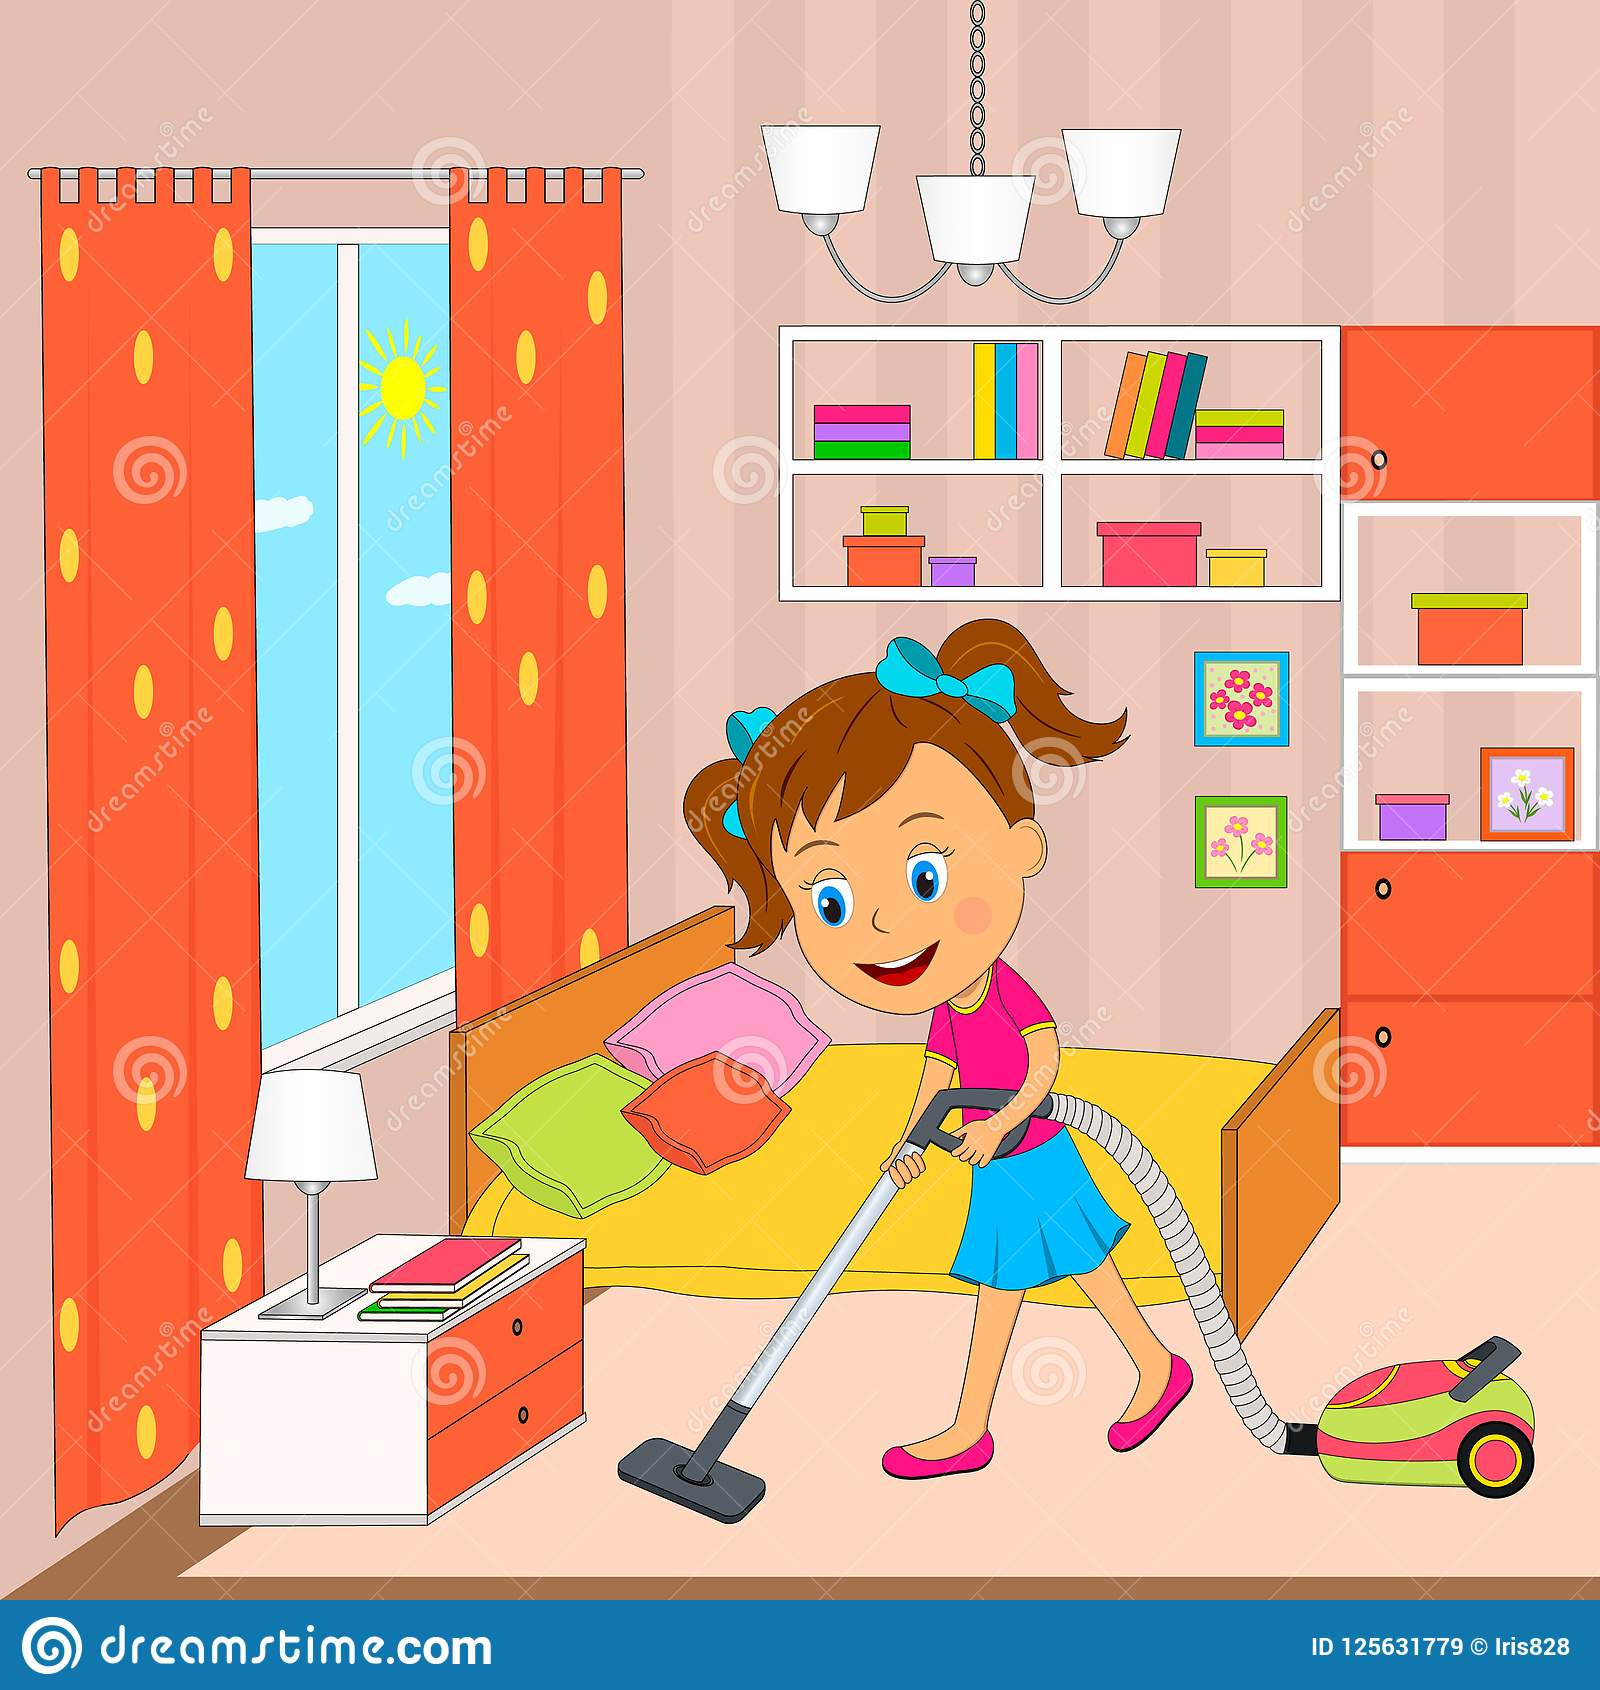 clean room clipart 20 free Cliparts | Download images on ...